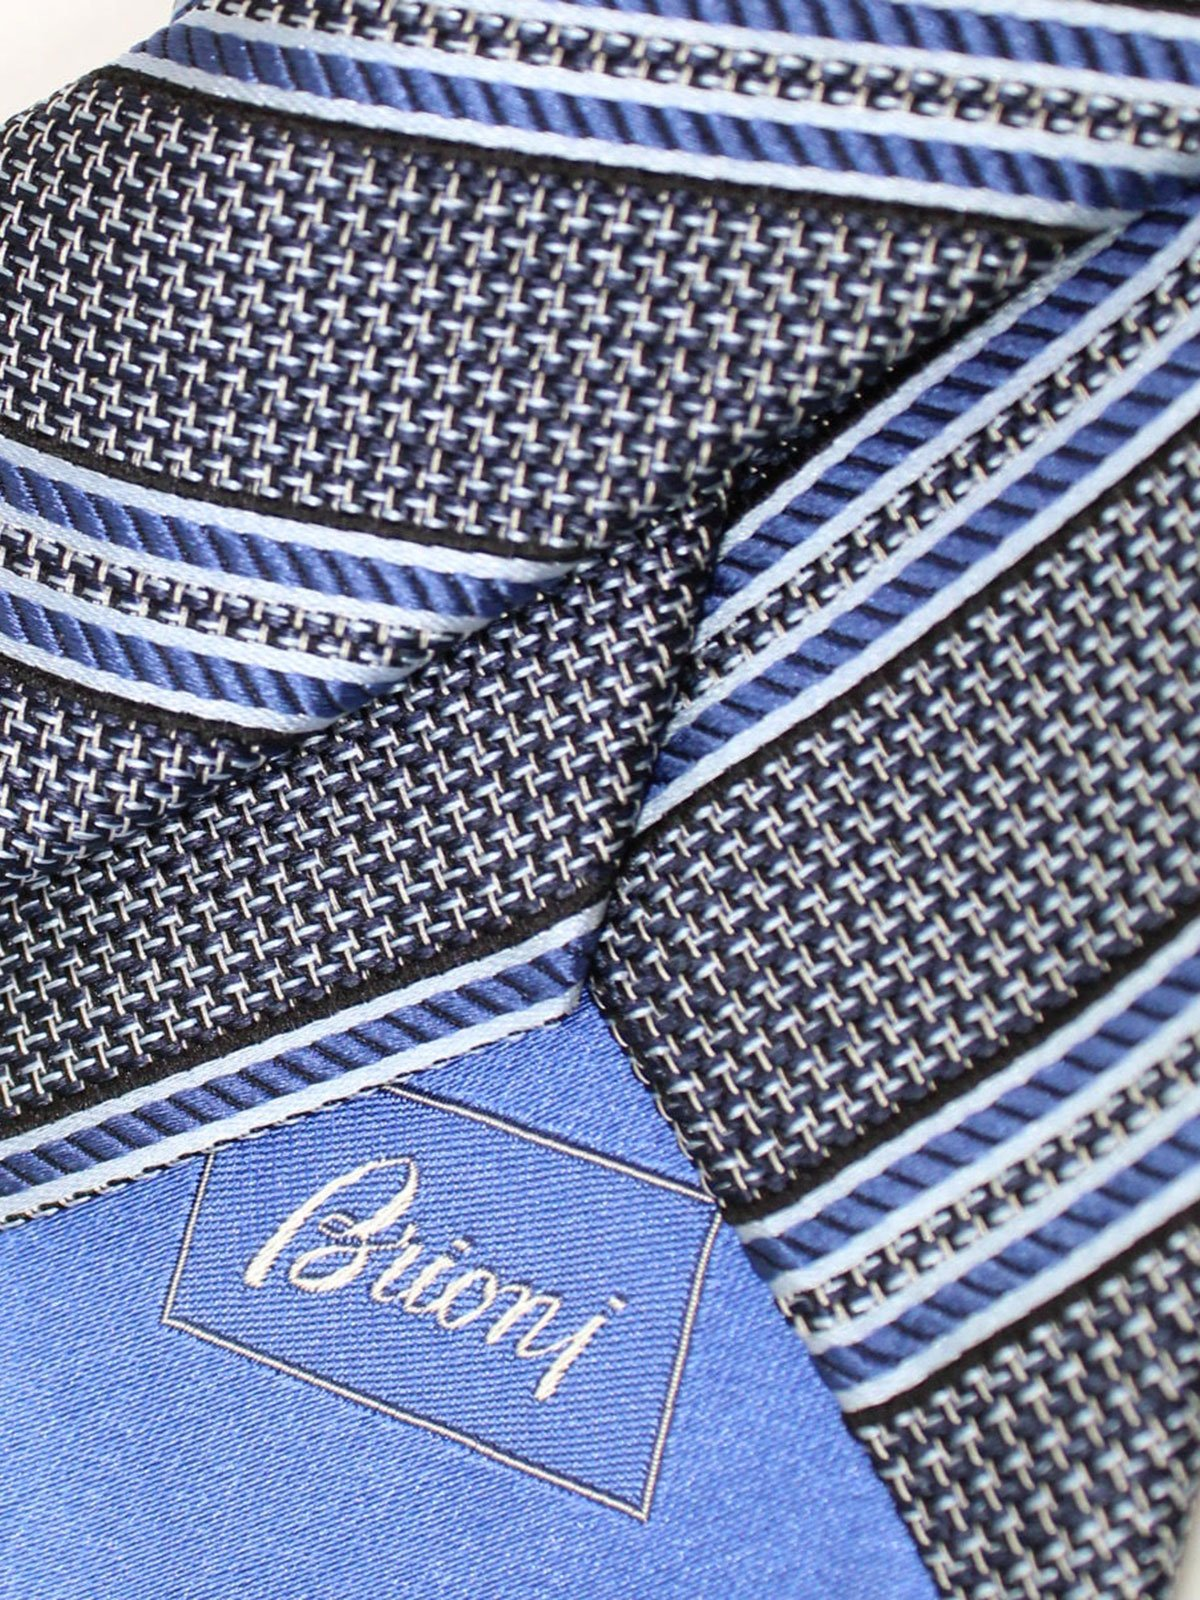 Brioni Silk Tie Blue Stripes Design